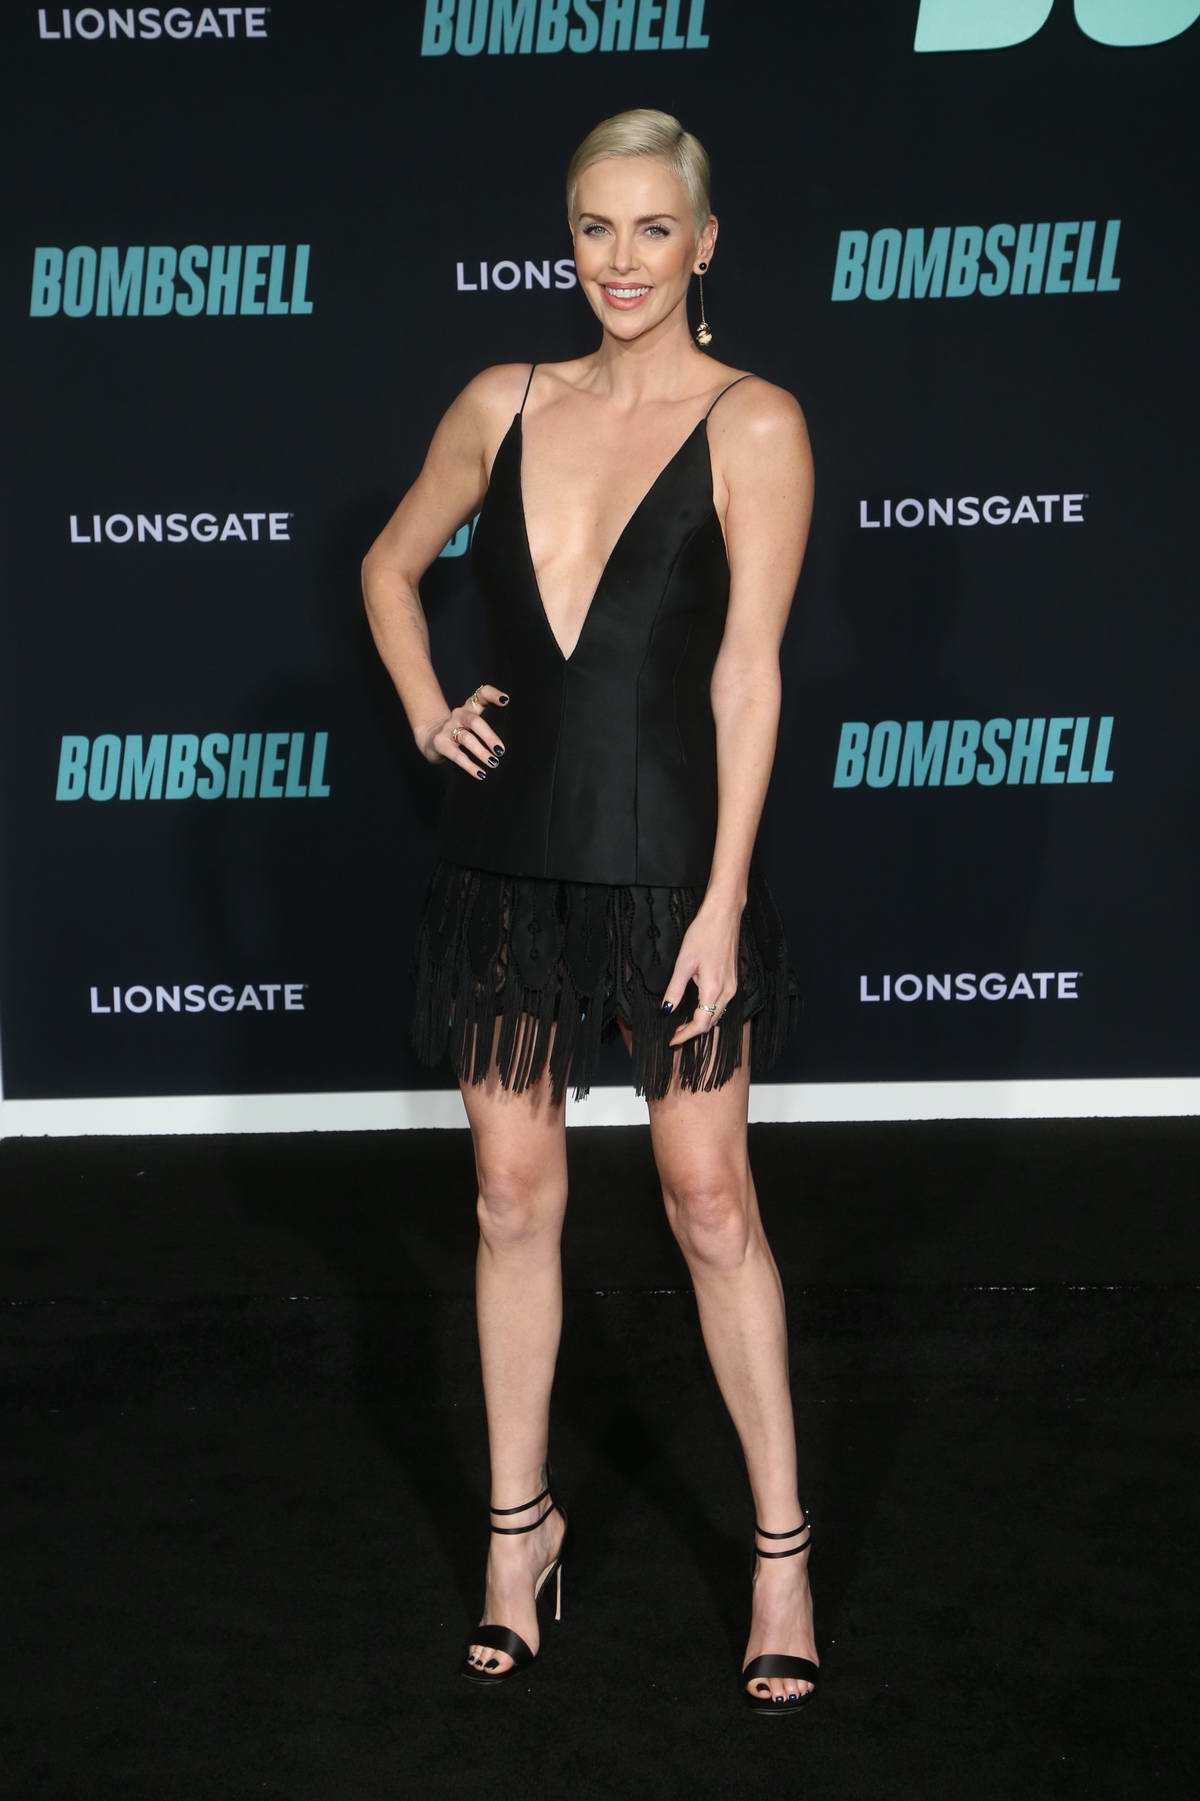 Charlize Theron attends a special screening of Bombshell in Westwood, California